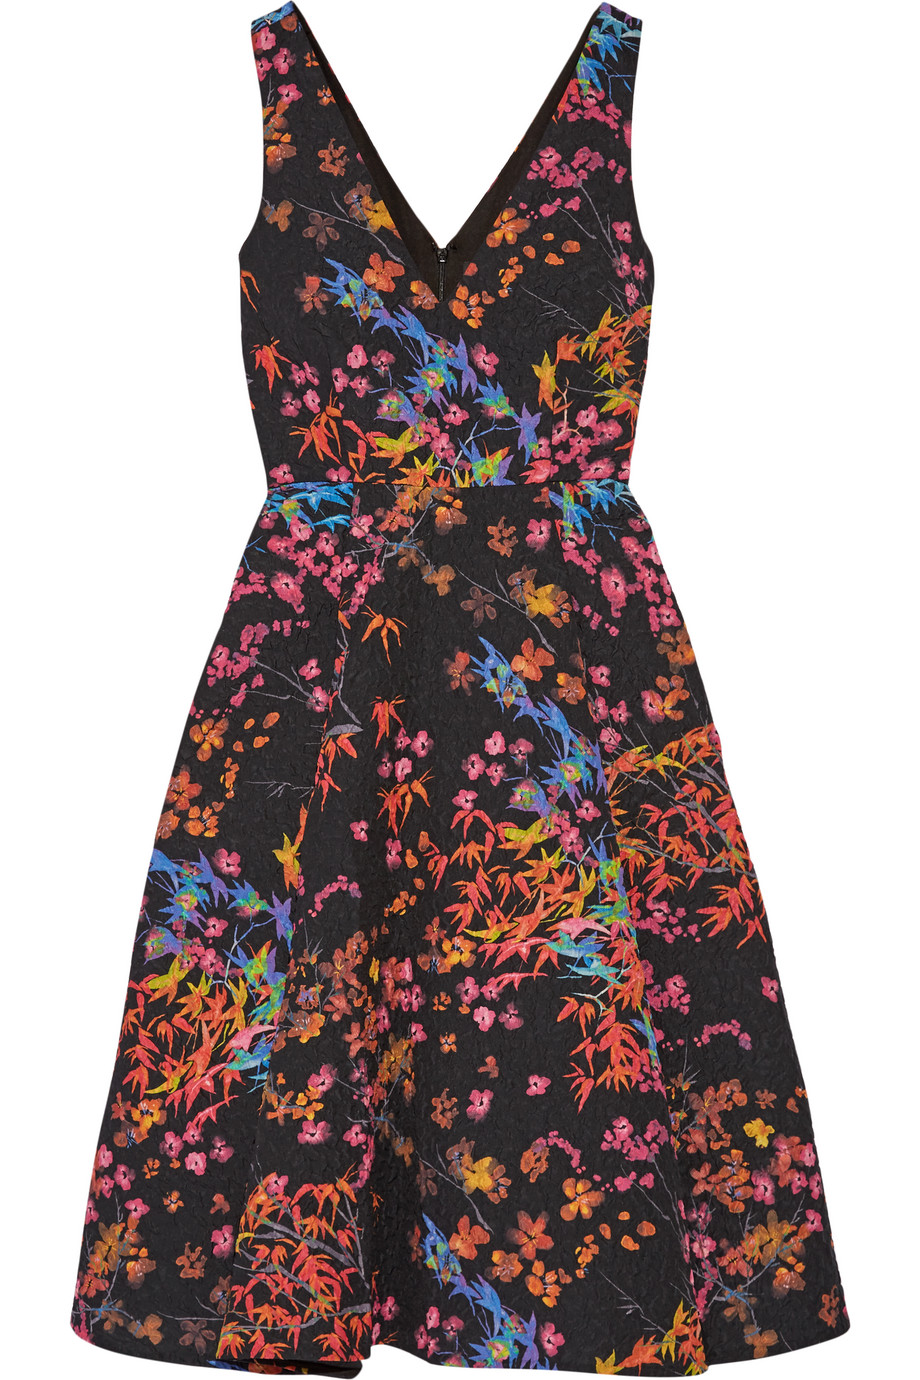 Saloni Jess Printed Cloqué Dress, Black, Women's - Printed, Size: 4